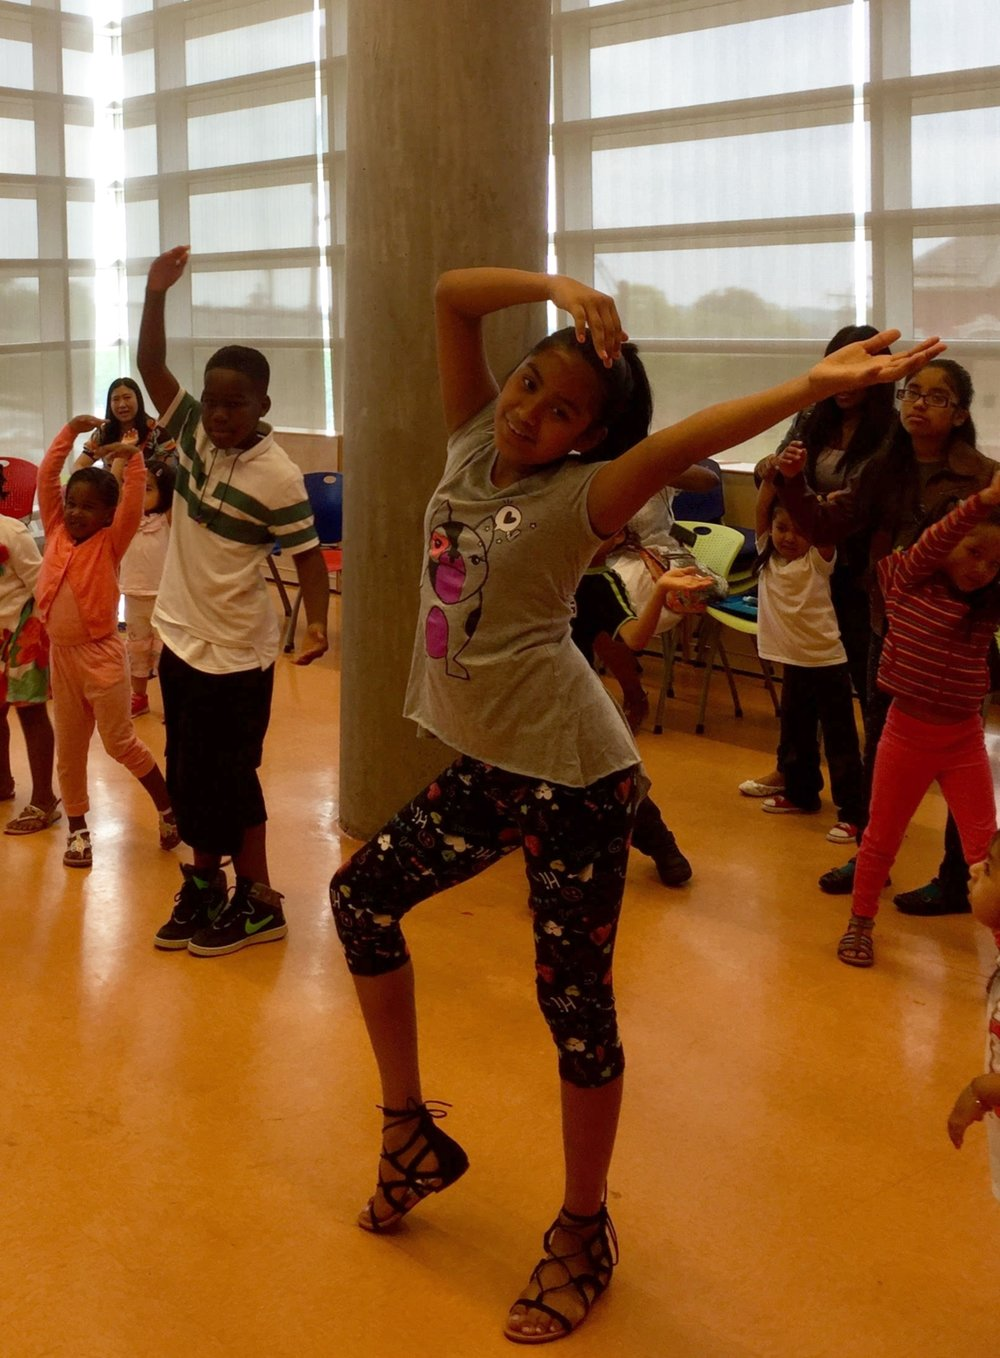 Move, Create and Collaborate - Move, Create and Collaborate, is an arts integrated creative dance residency for grades k-12, that engages students in an exploration of classroom curriculum through movement and dance-making. Directed by choreographer and dance educator, Sarah Council, students will have the opportunity to experience the joy of movement while participating in problem solving, self expression and collaboration. Working collaboratively, students will create choreography that explores a curriculum area selected by classroom teachers such as science, math, language arts and social studies. SCDP creates a rich immersive arts experience for all participants and provides educators with accessible arts integration strategies that empower them to carry the work forward for years to come!Educators may select from the residency offerings listed below or chose to work with SCDP to create custom content for their classes.For more information on residencies, scheduling and pricing contact: info@sarahcouncildance.com